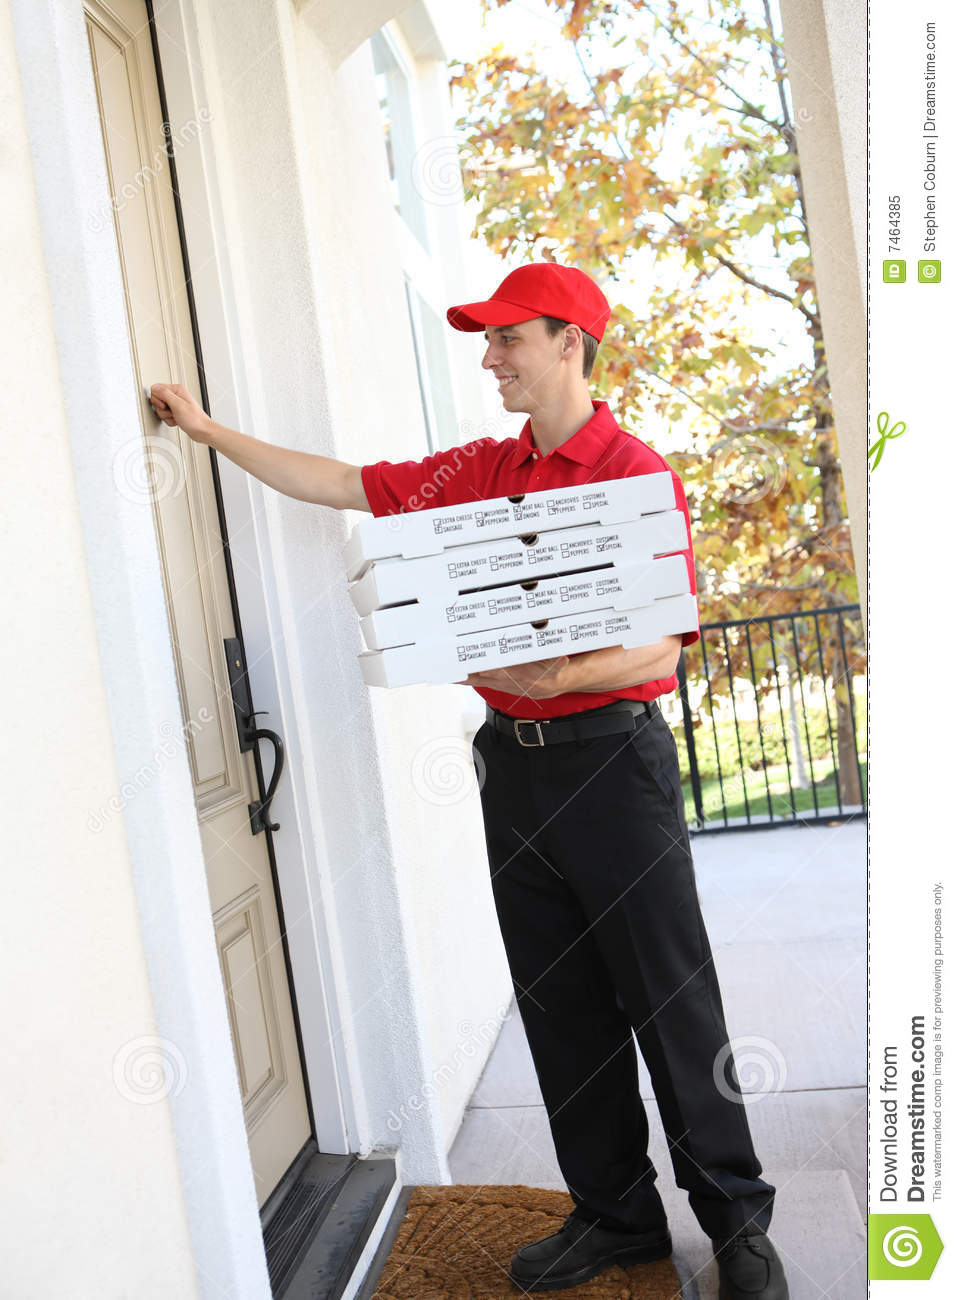 image A pizza delivery boy gets tied up with sticky bdsm tape